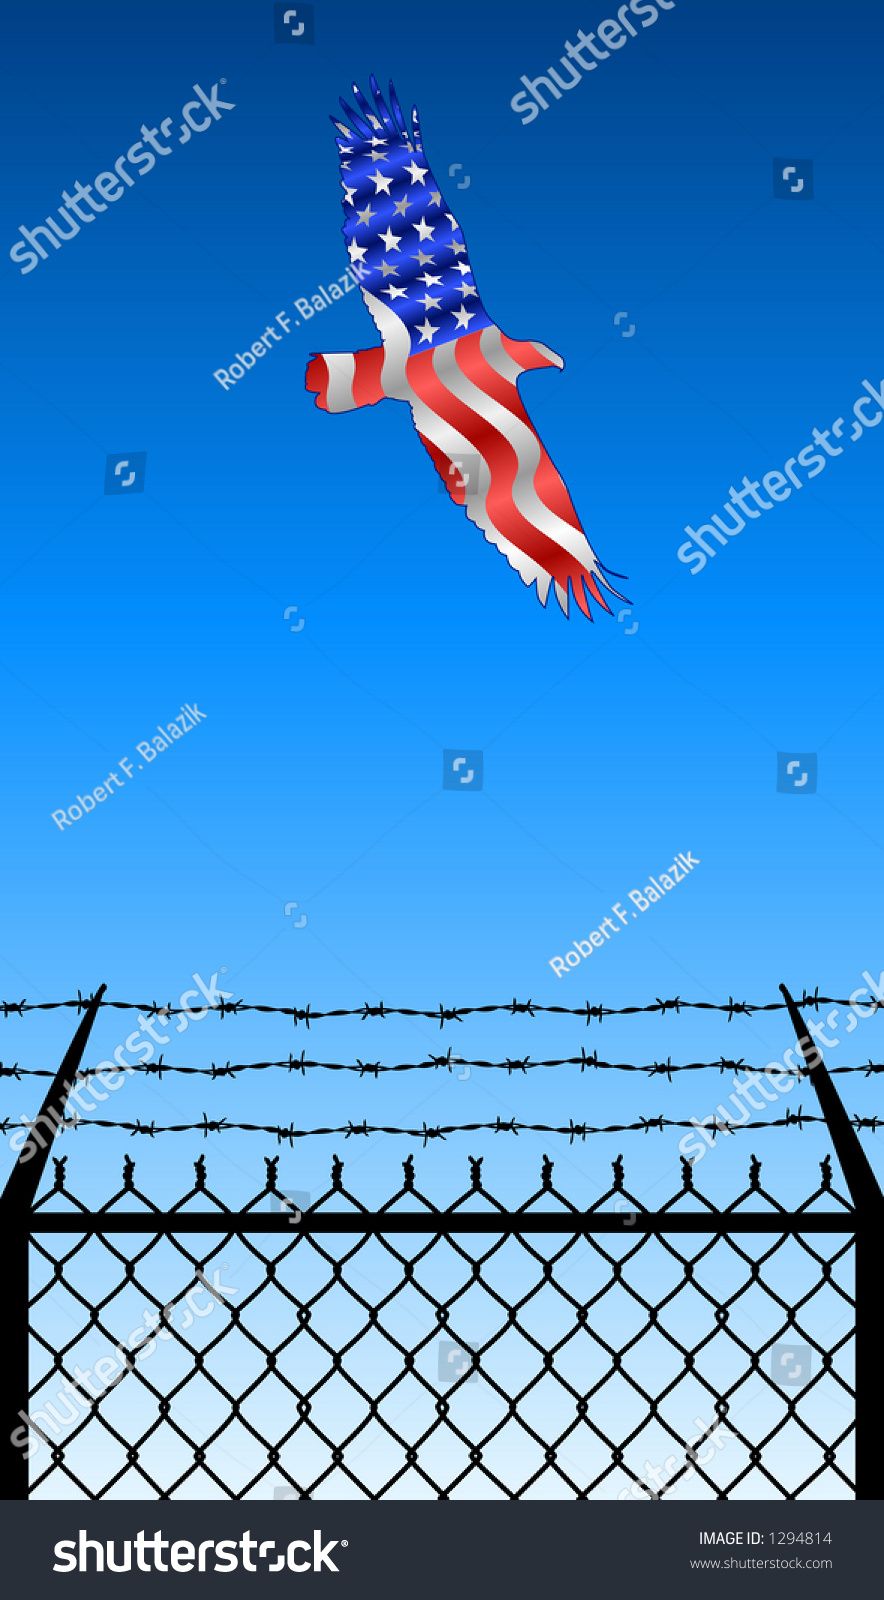 Prison Fence Graphic vector silhouette graphic depicting prison fence stock vector